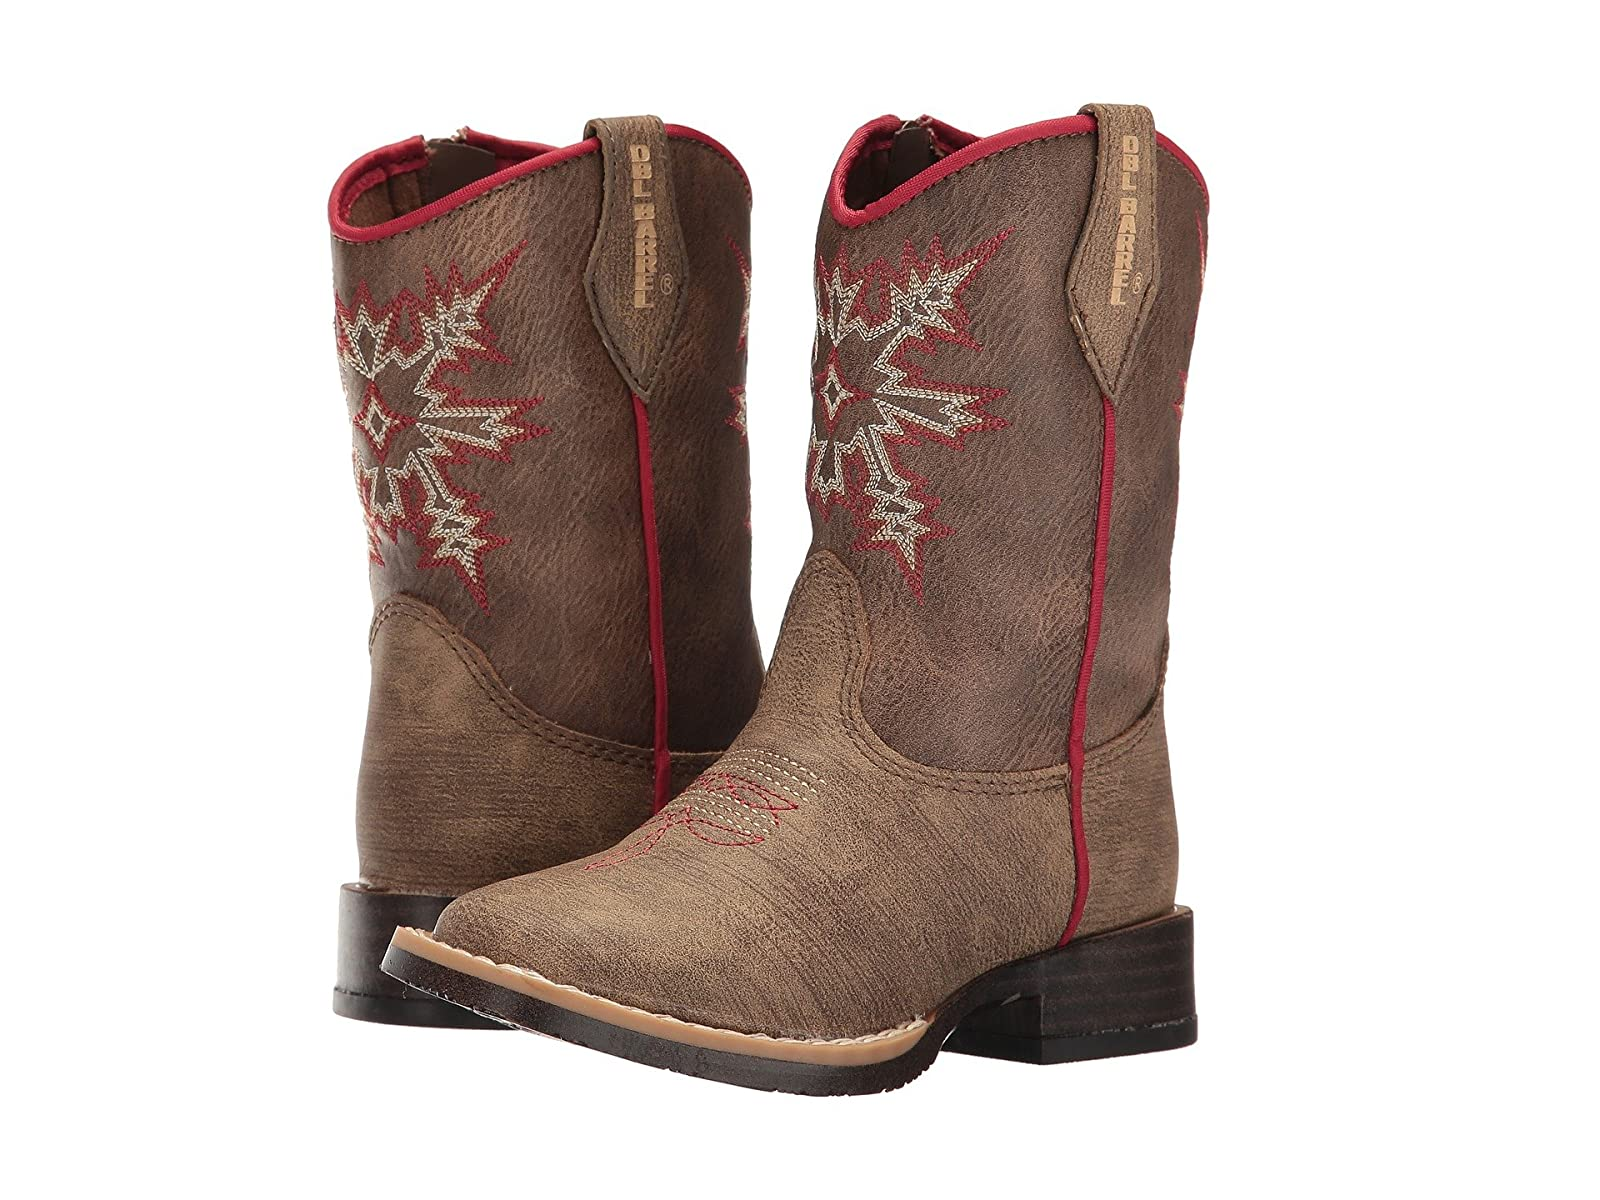 M&F Western Kids Clay (Toddler)Affordable and distinctive shoes